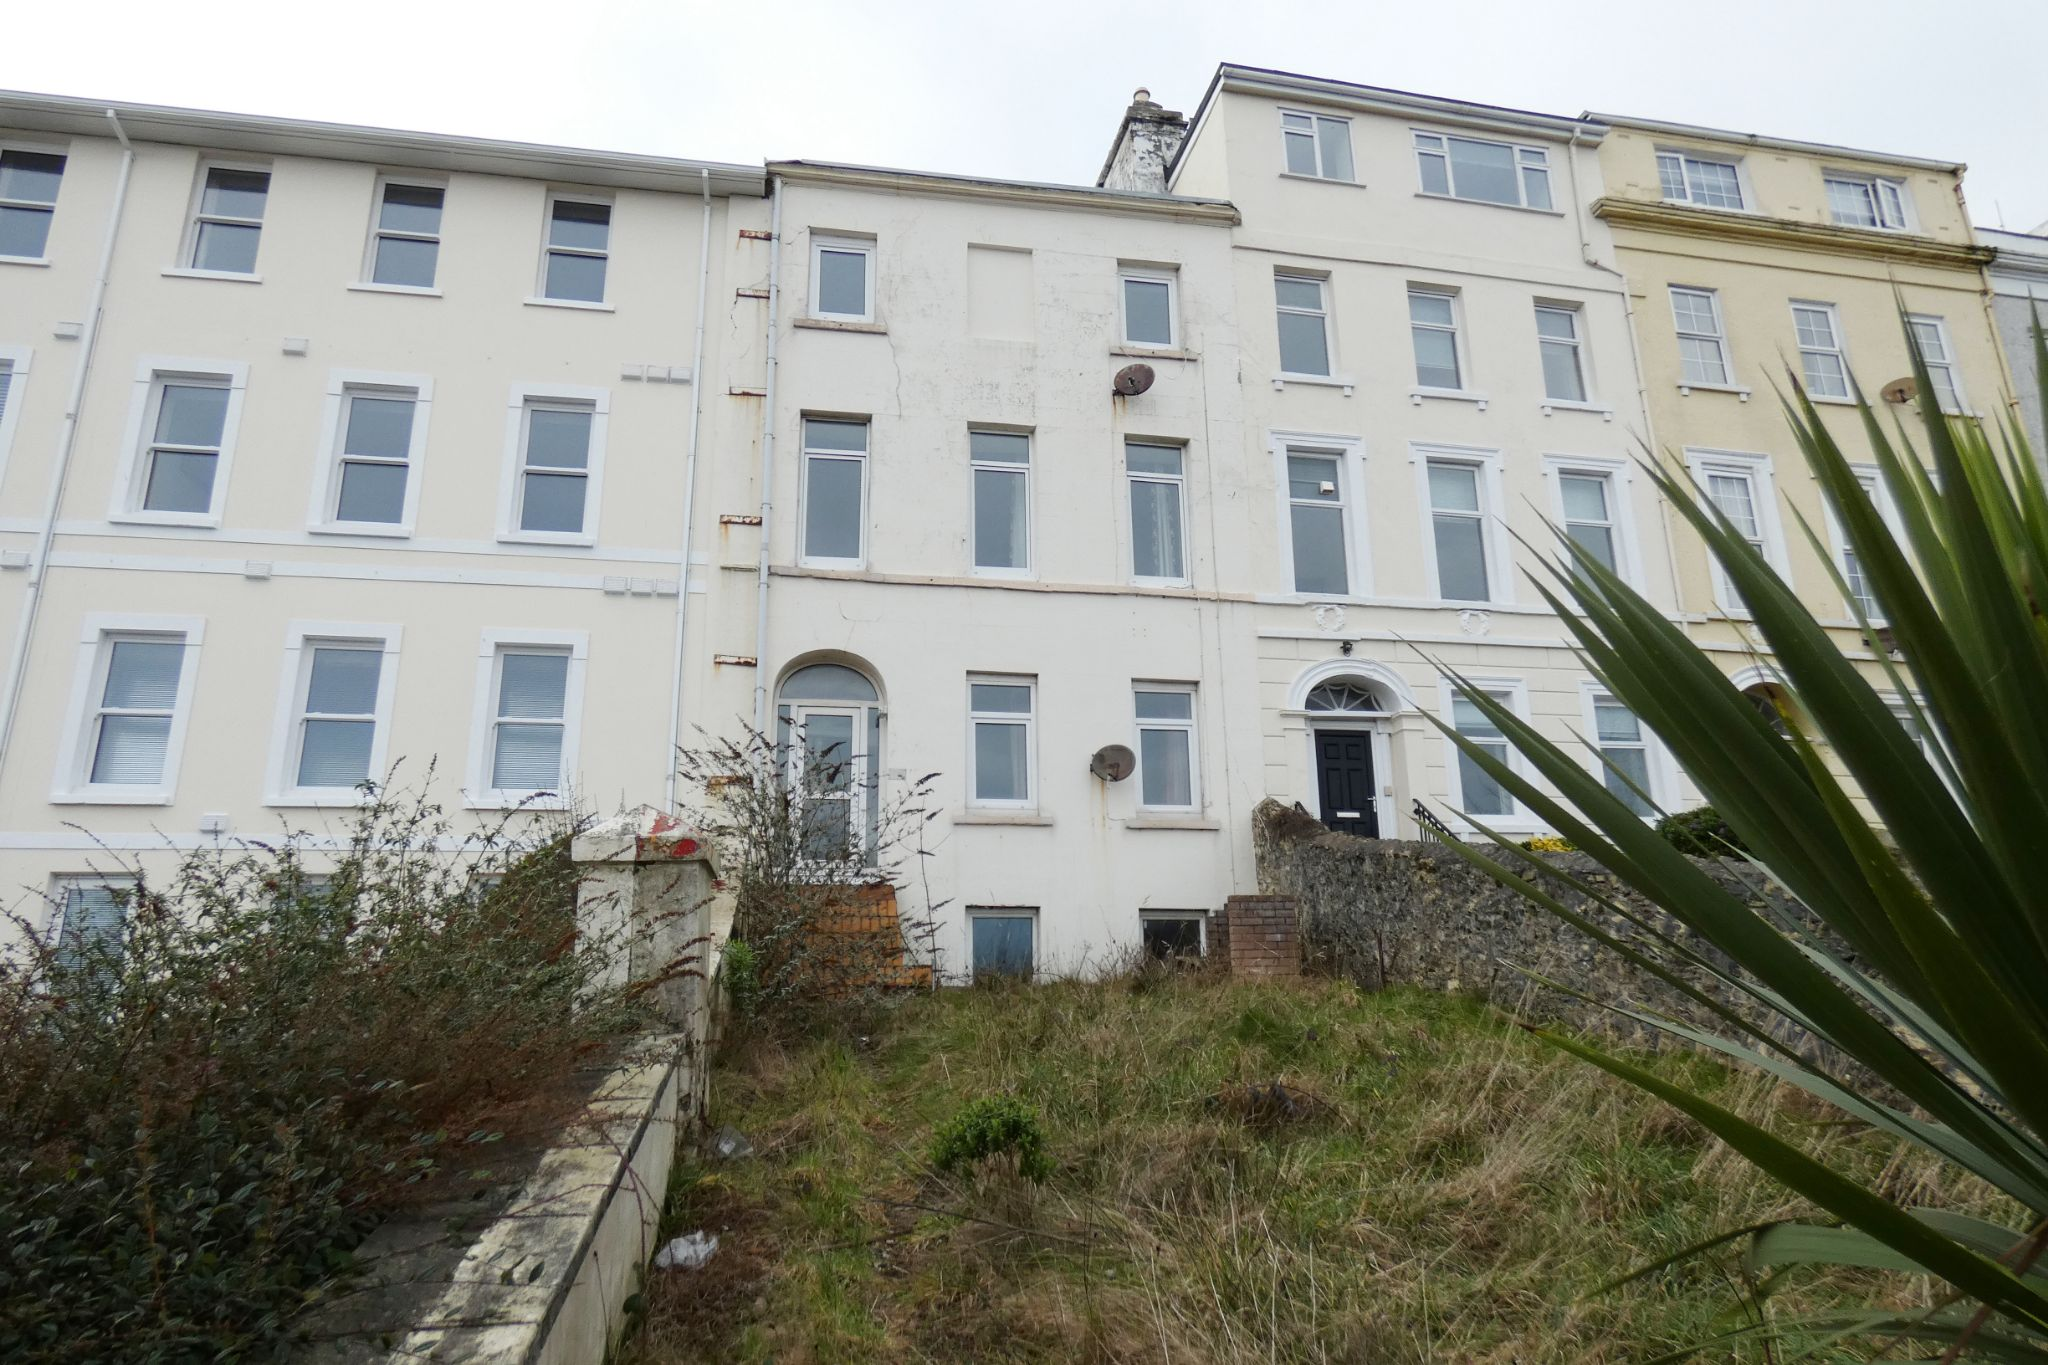 6 bedroom mid terraced house Sale Agreed in Douglas - Photograph 1